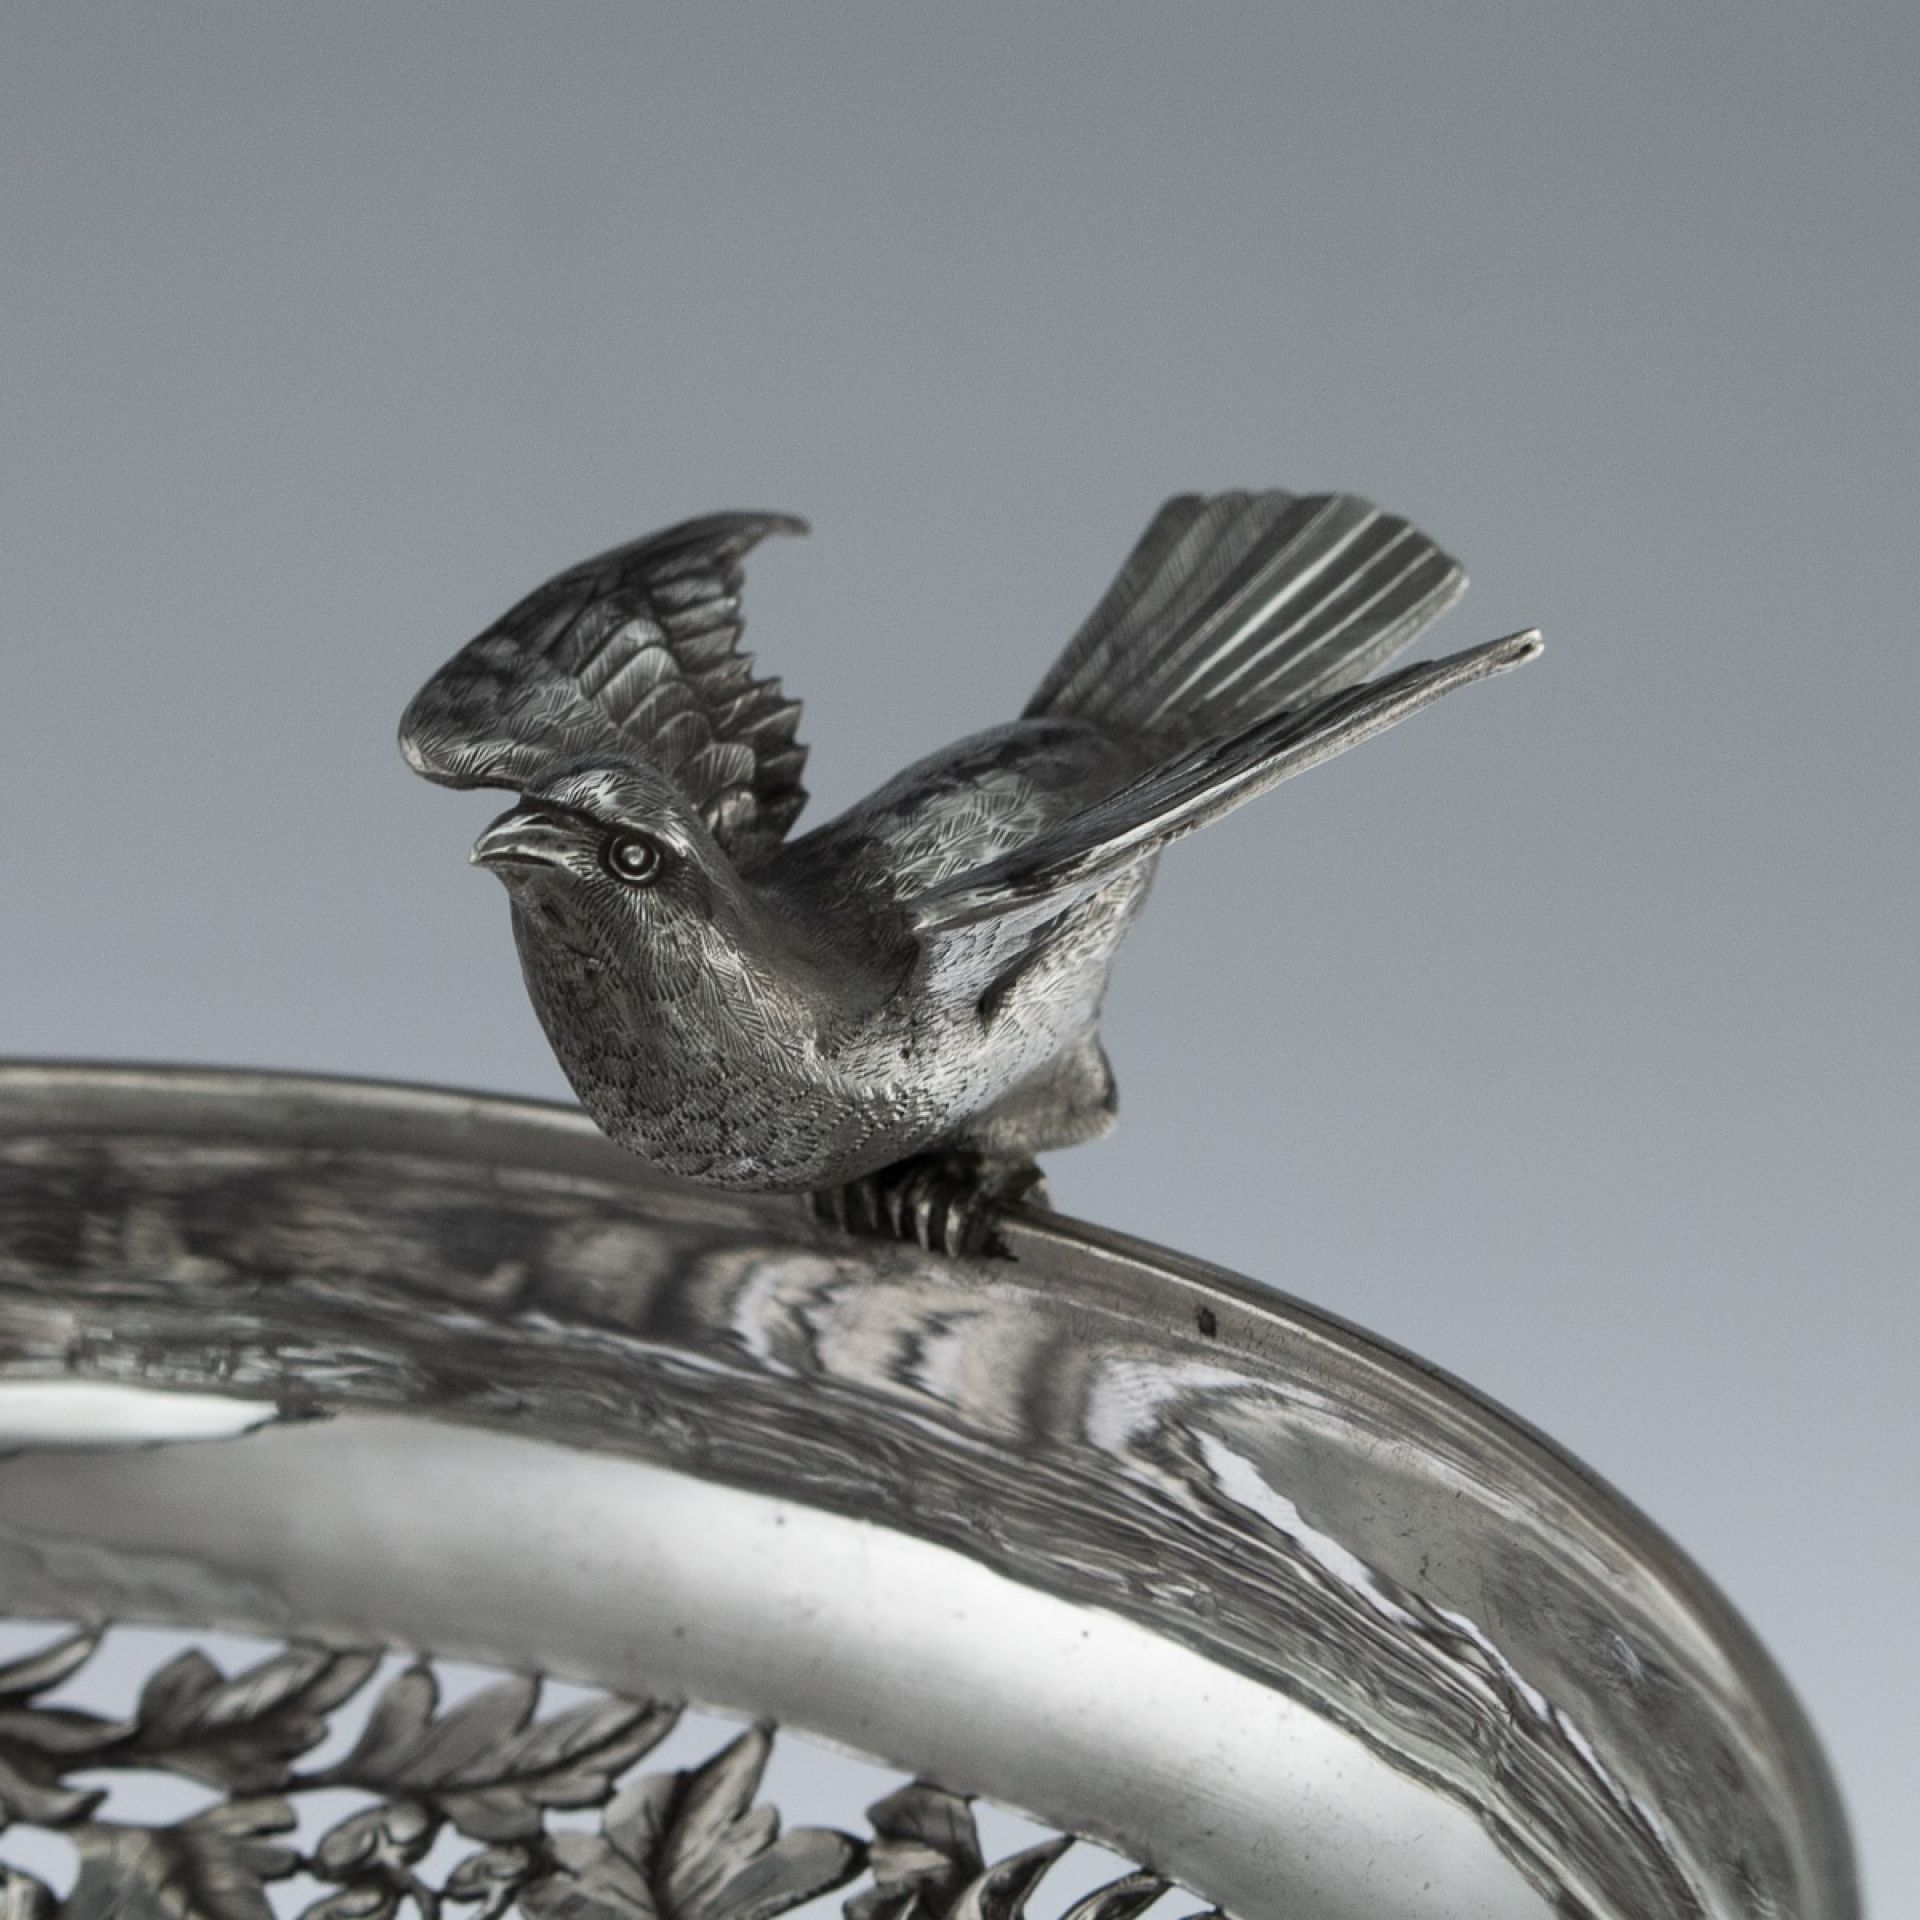 ANTIQUE 19thC CHINESE EXPORT SOLID SILVER TAZZA, WOSHING, SHANGHAI c.1880